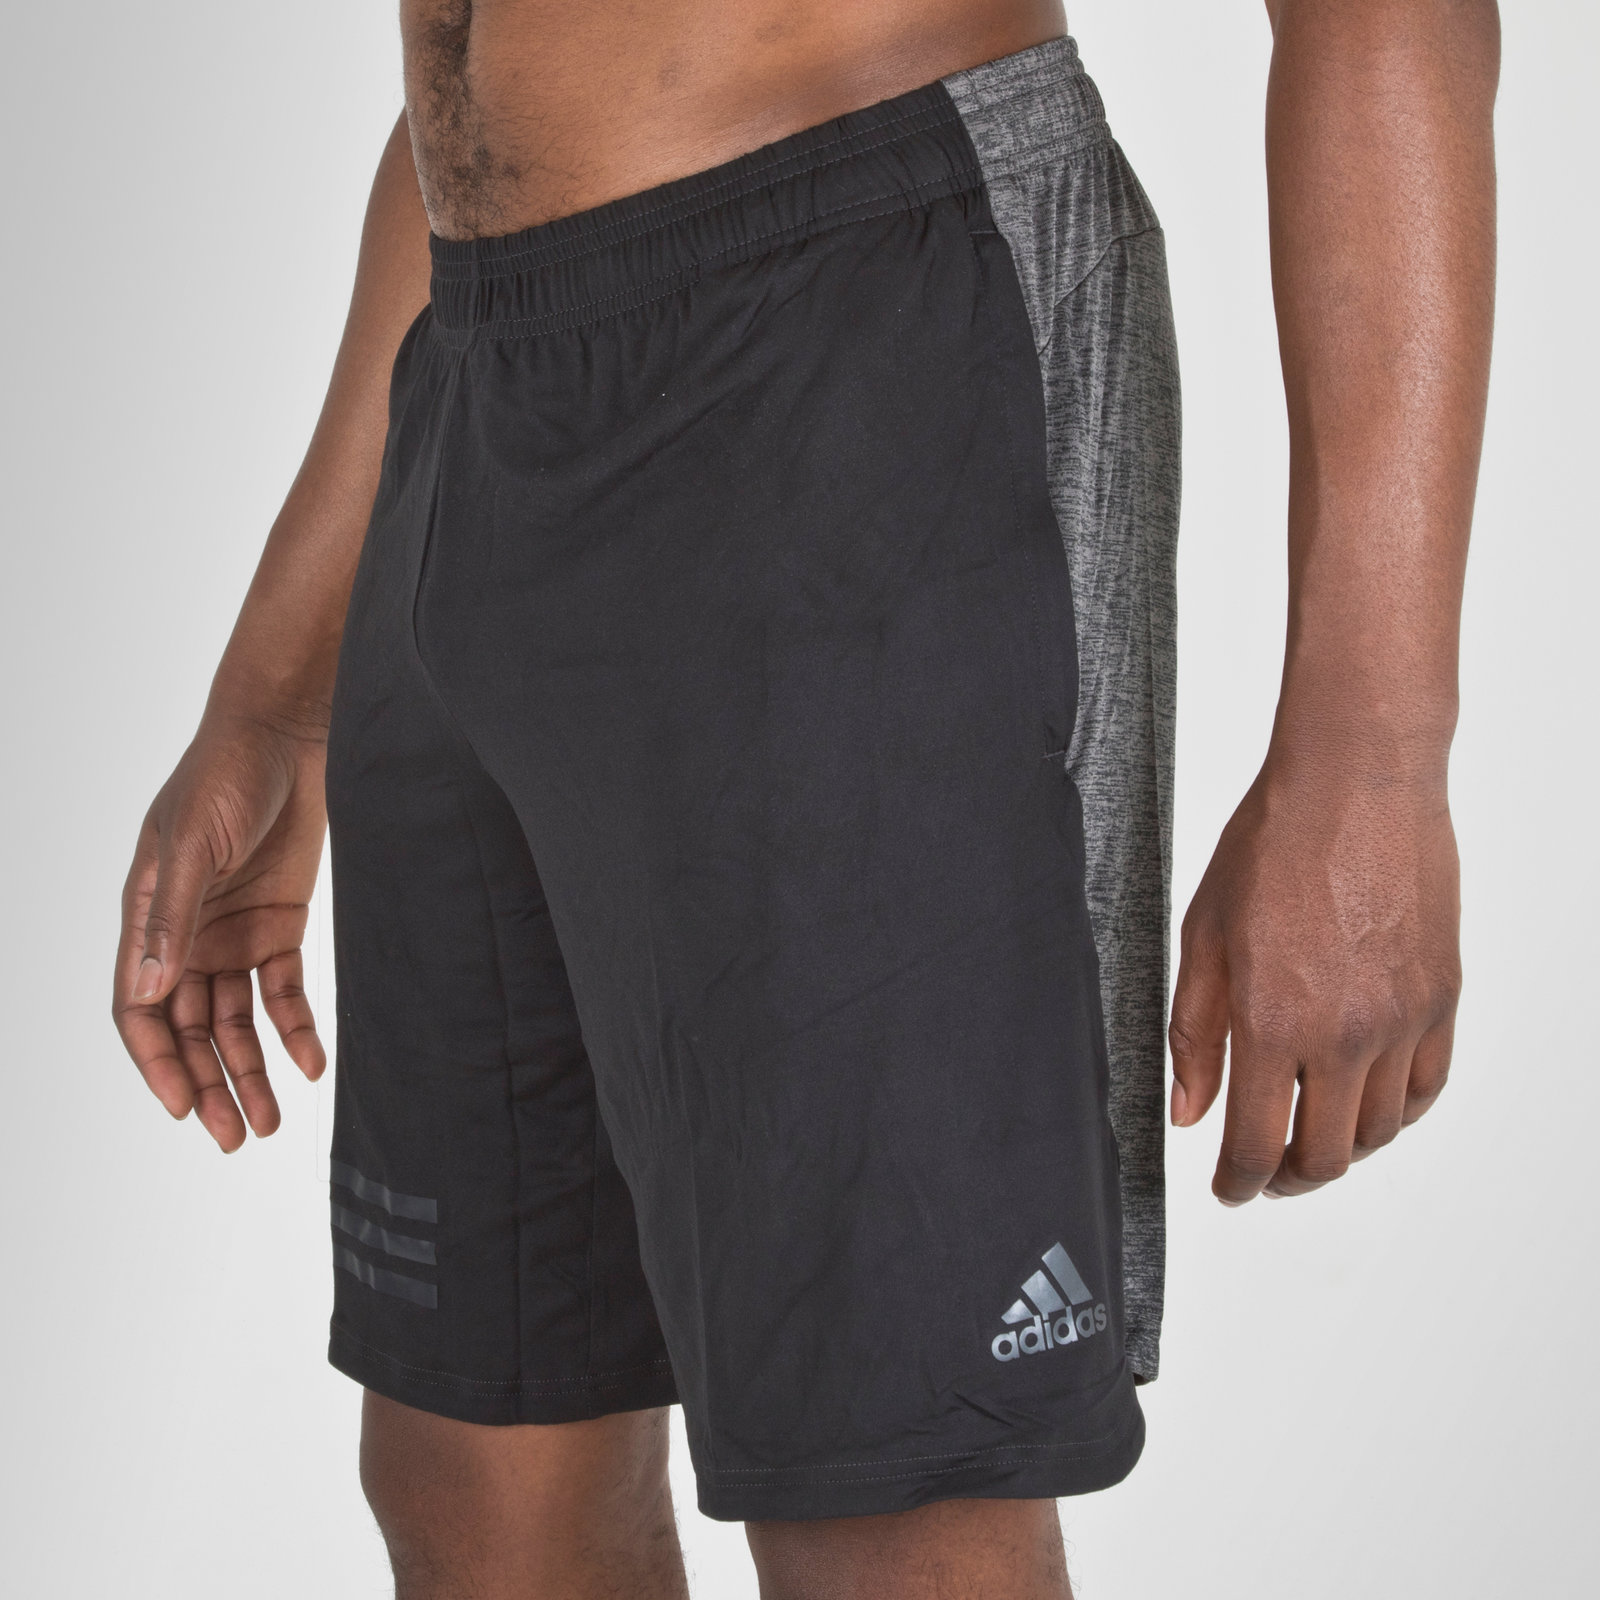 Image of 4KRFT Climalite Gradient Training Shorts